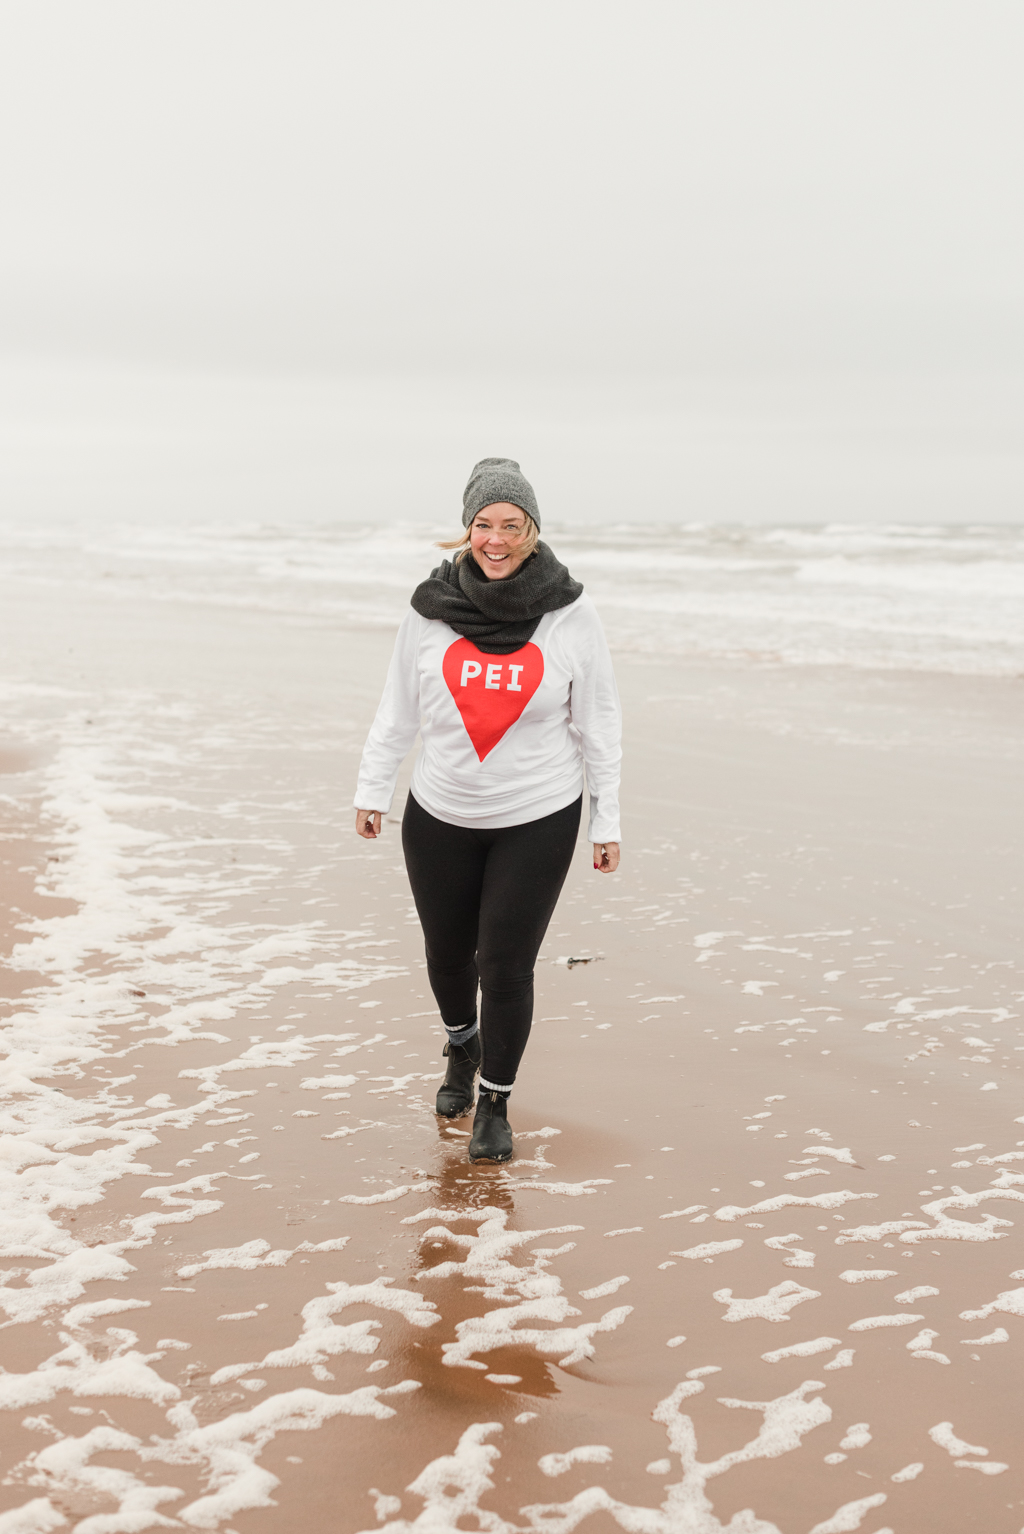 PEI Heart Sweatshirt - Prince Edward Island - Brackley Beach - Rachel Peters - November 2018 - The Girl From Away.jpg